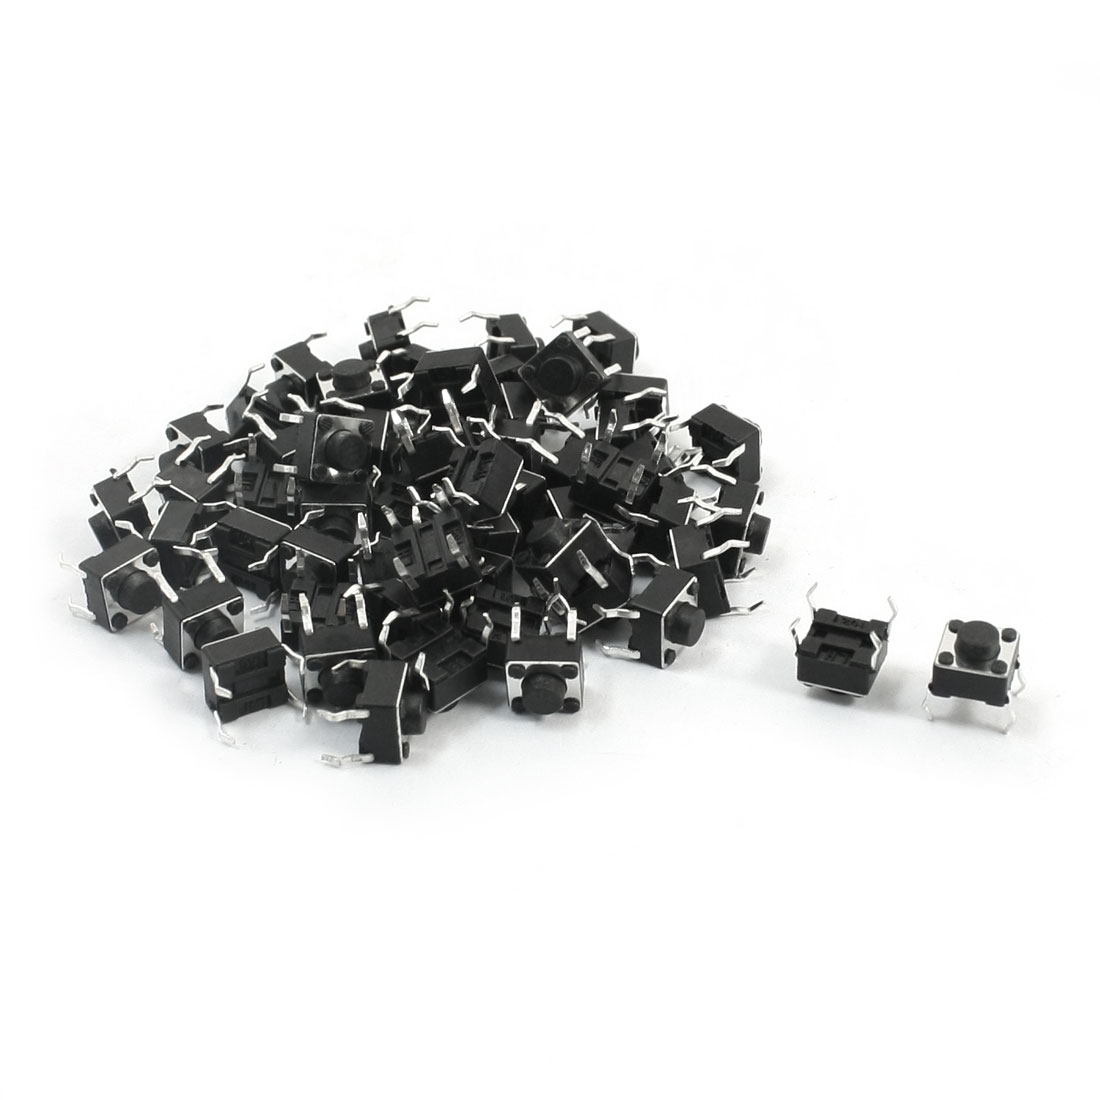 55Pcs Momentary PCB Pushbutton Push Button Tact Tactile Switch DIP 6mmx6mmx5mm